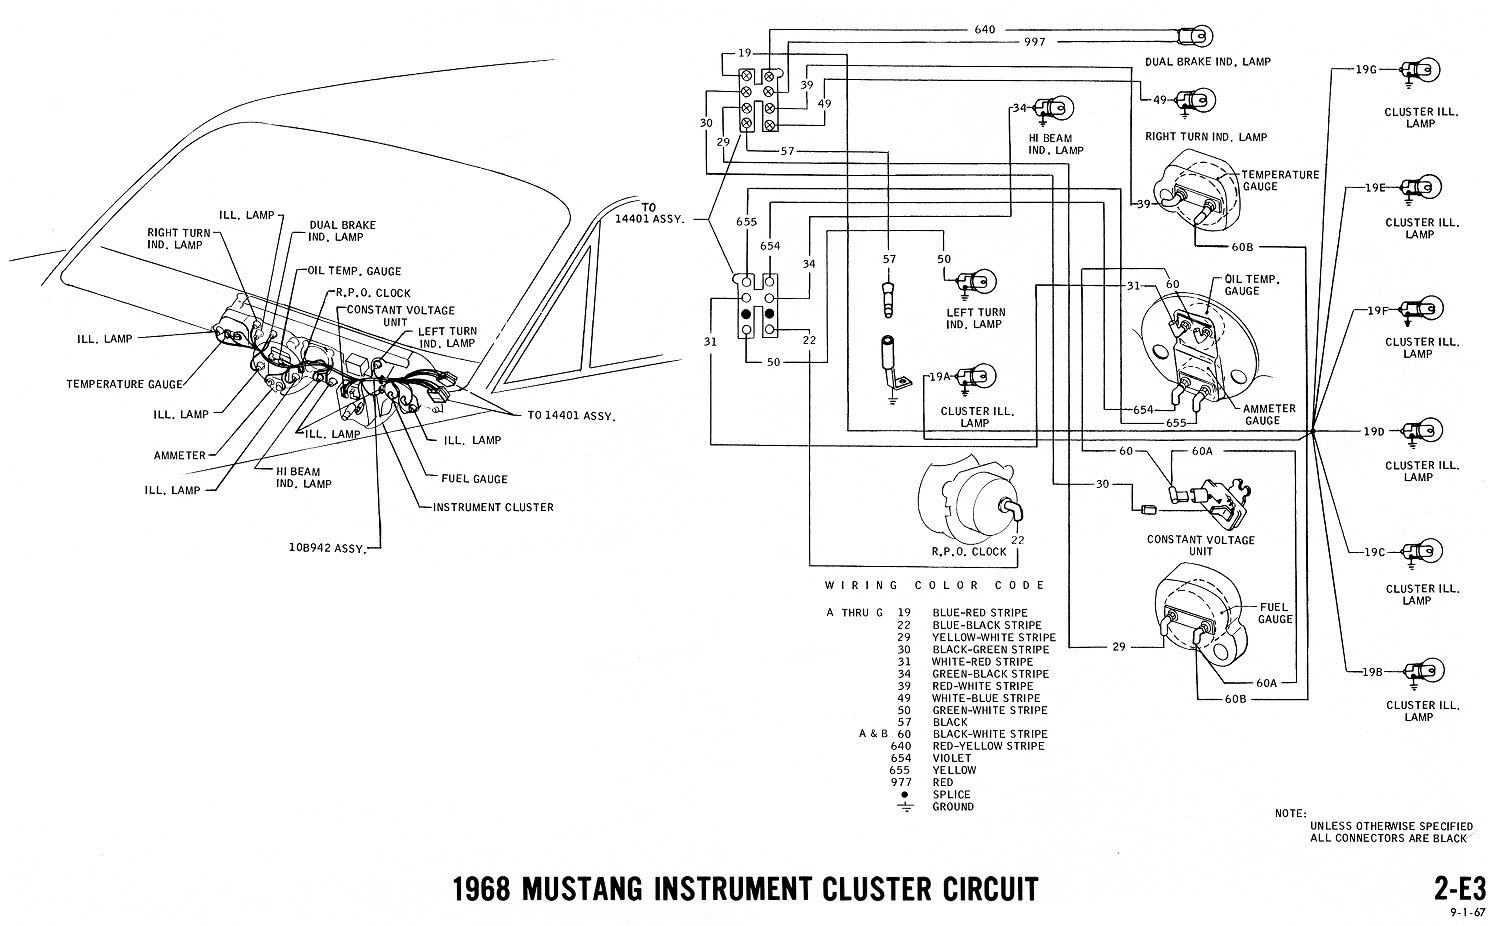 Amp Gauge Wiring Diagram 72 Mustang Library 1968 Chevelle Schematic 68 Ammeter Ford Forum Rh Allfordmustangs Com